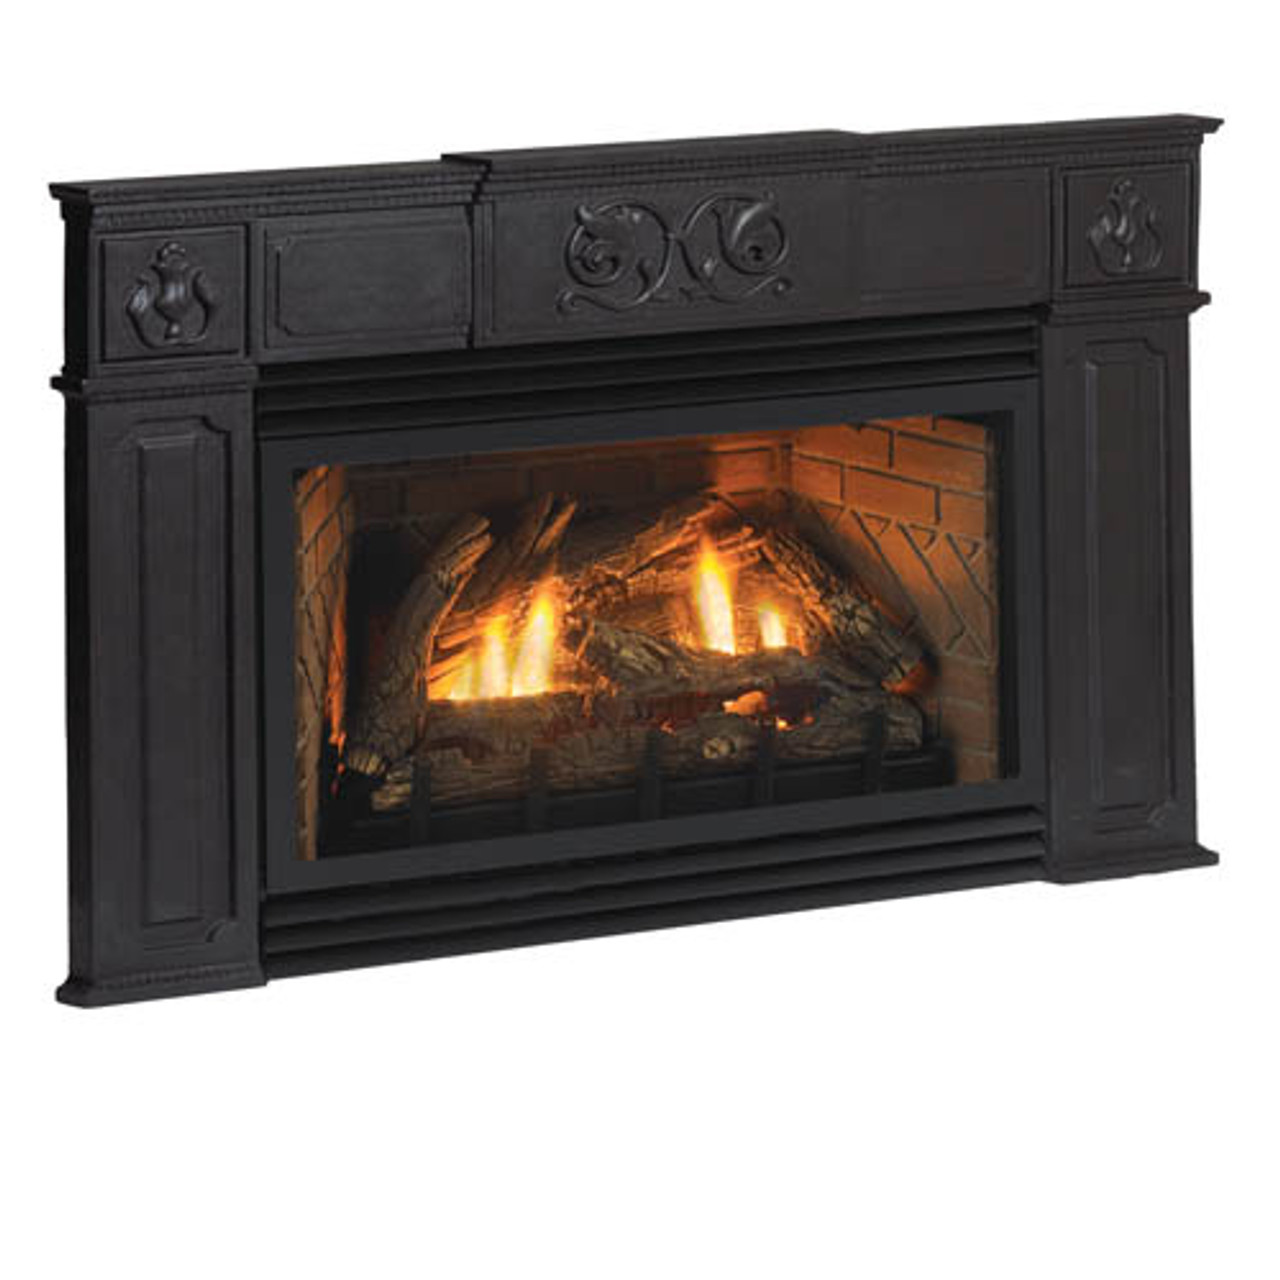 American Hearth Innsbrook Vent Free Fireplace Insert